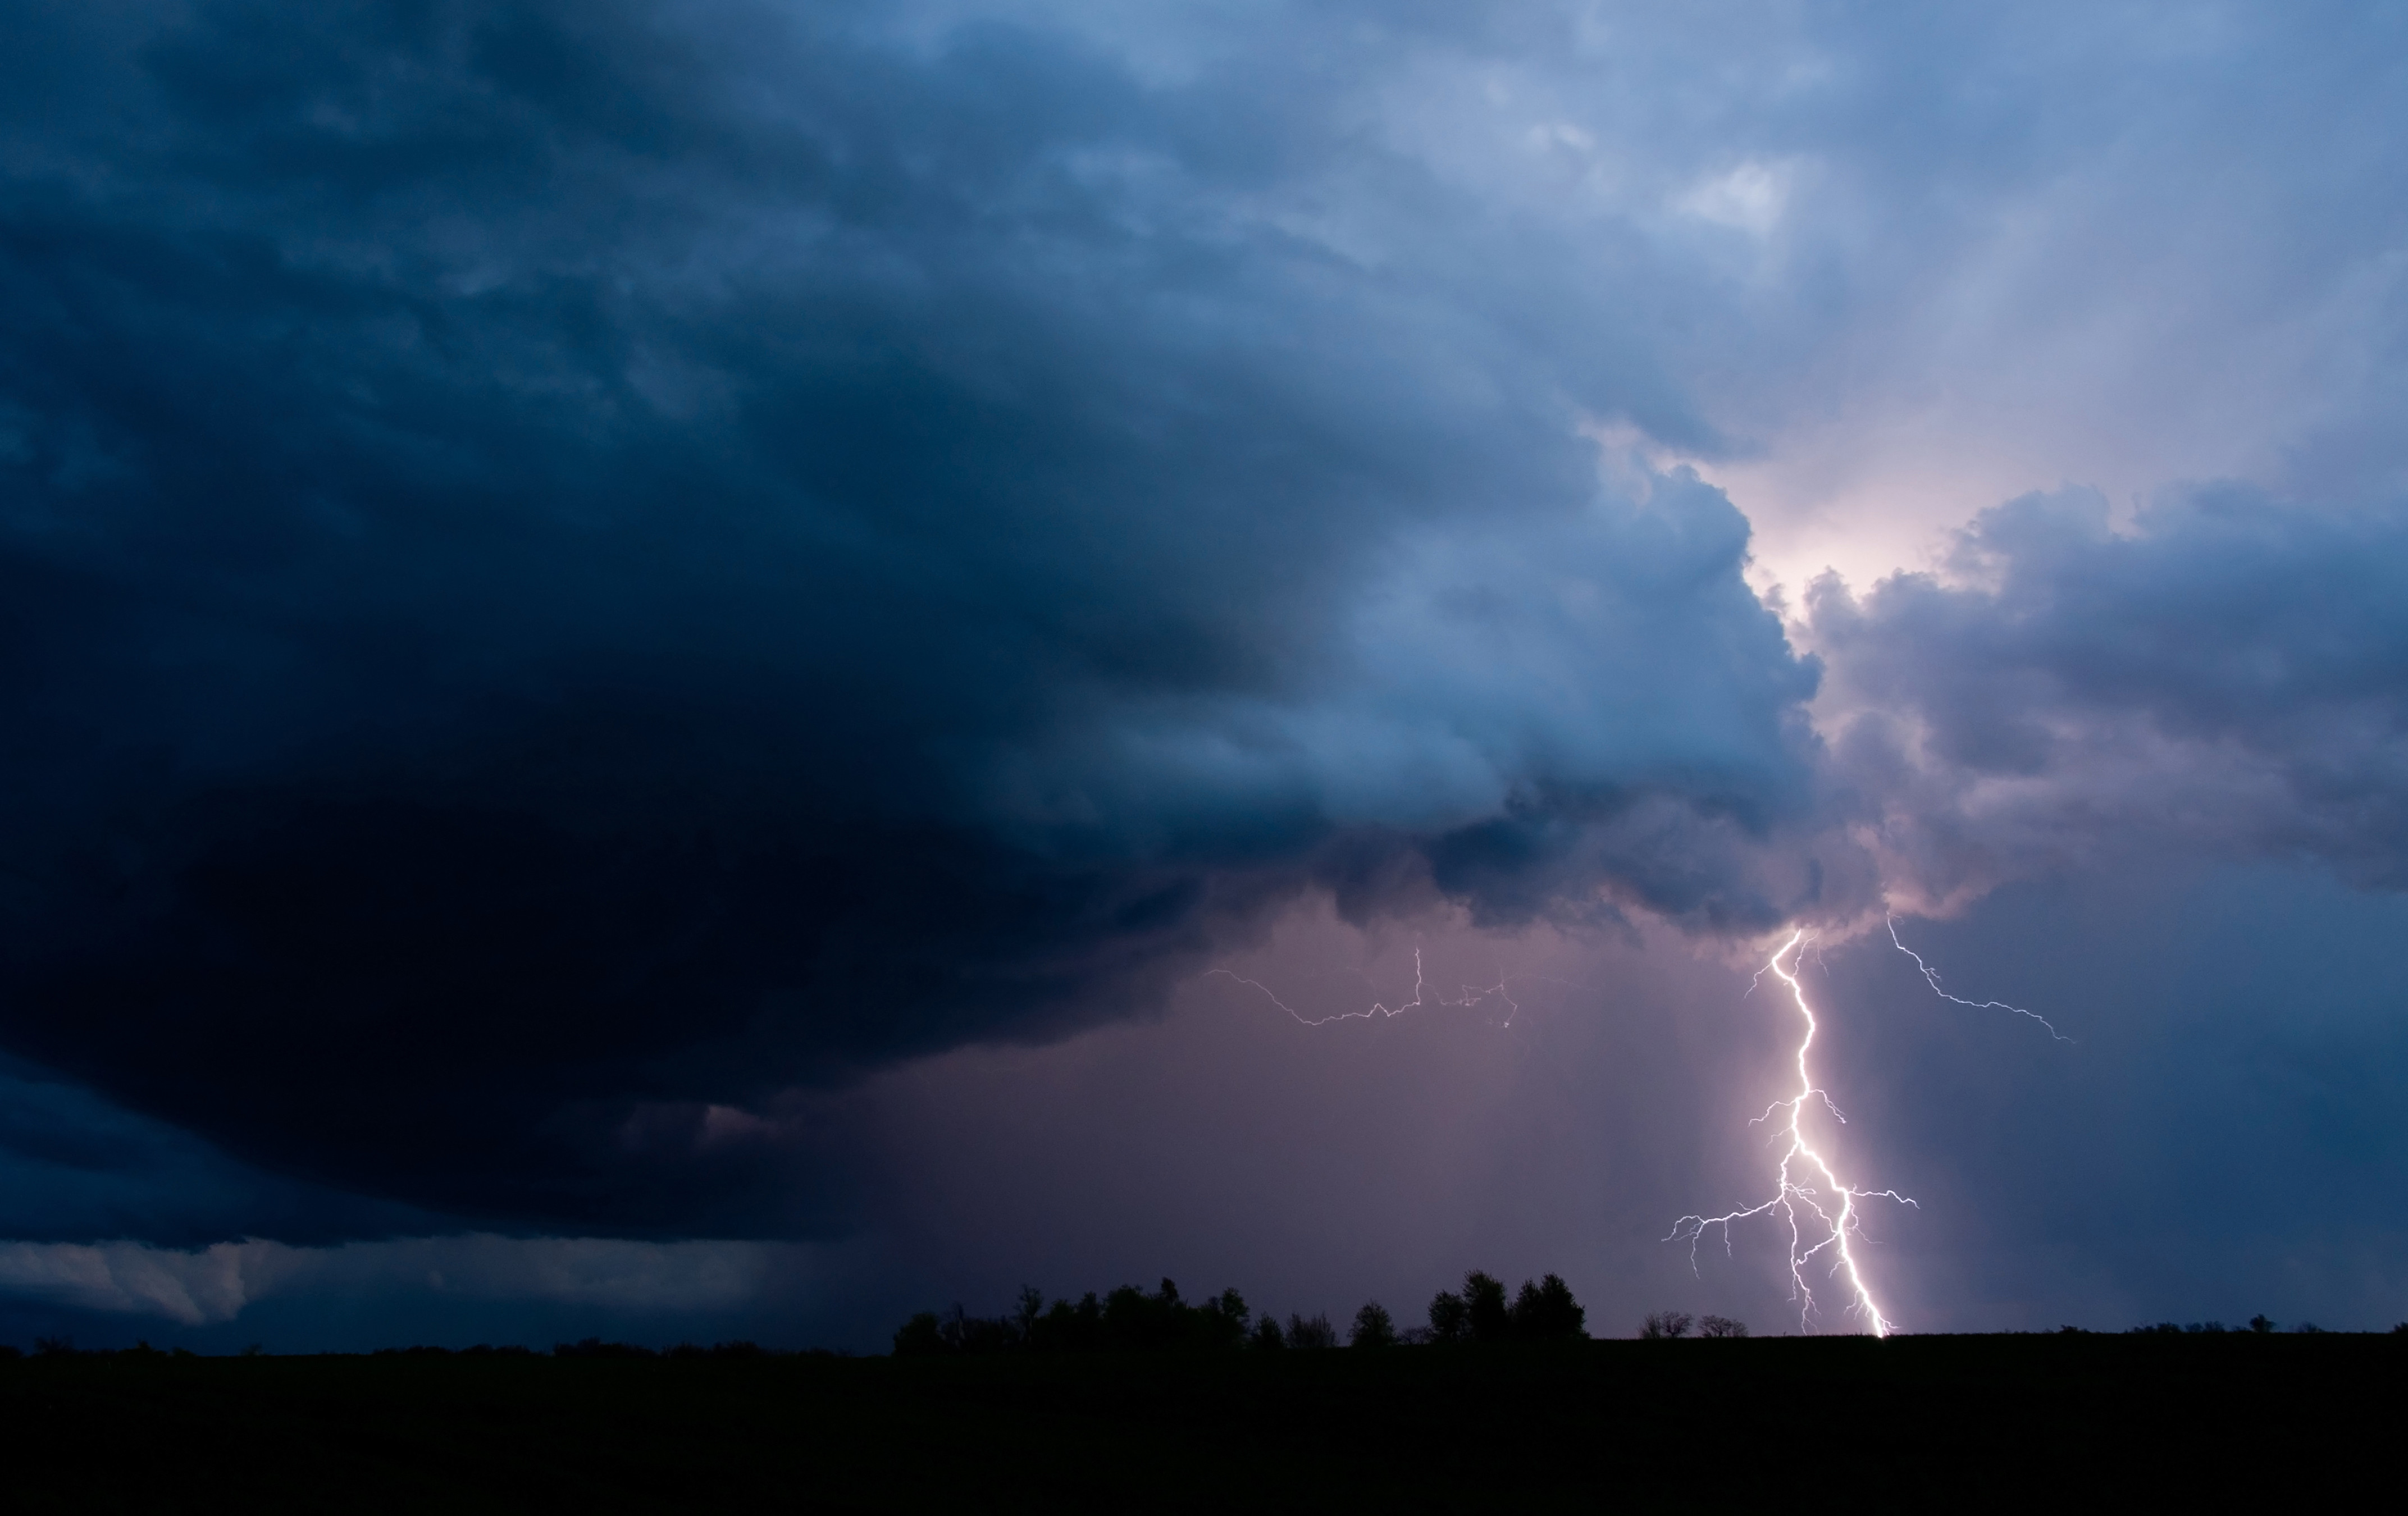 An Expert Meteorologist Answers Your Thunderstorm